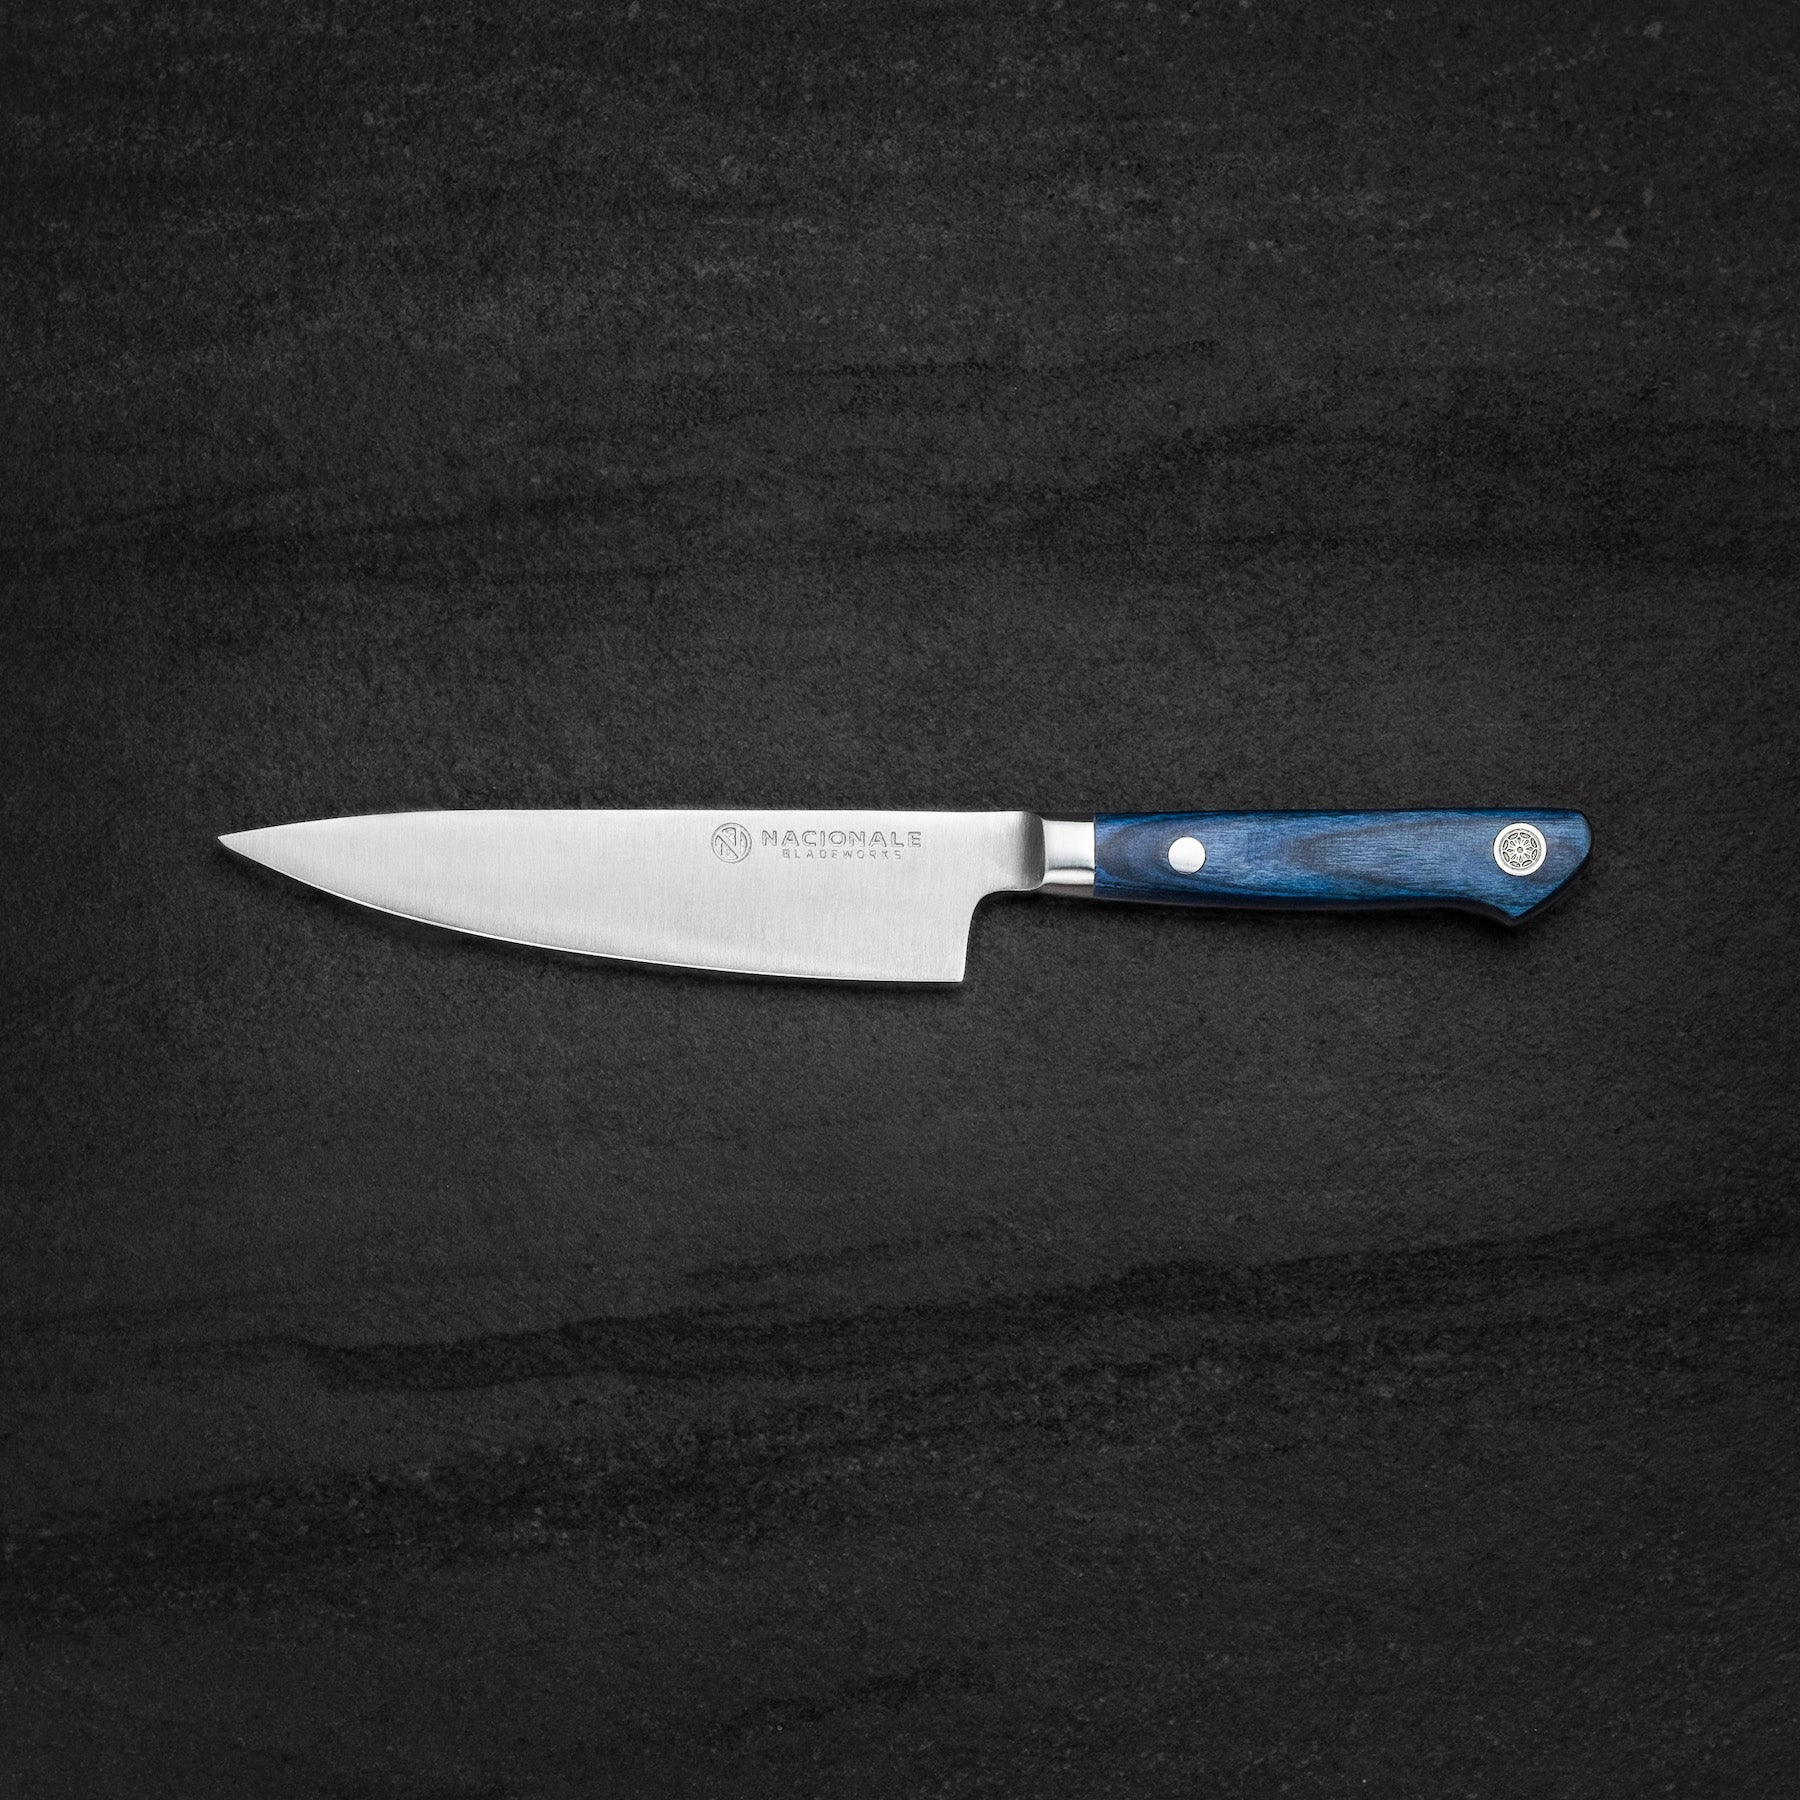 145mm Petty. AUS8. Full Tang. Blue Pakkawood Handle